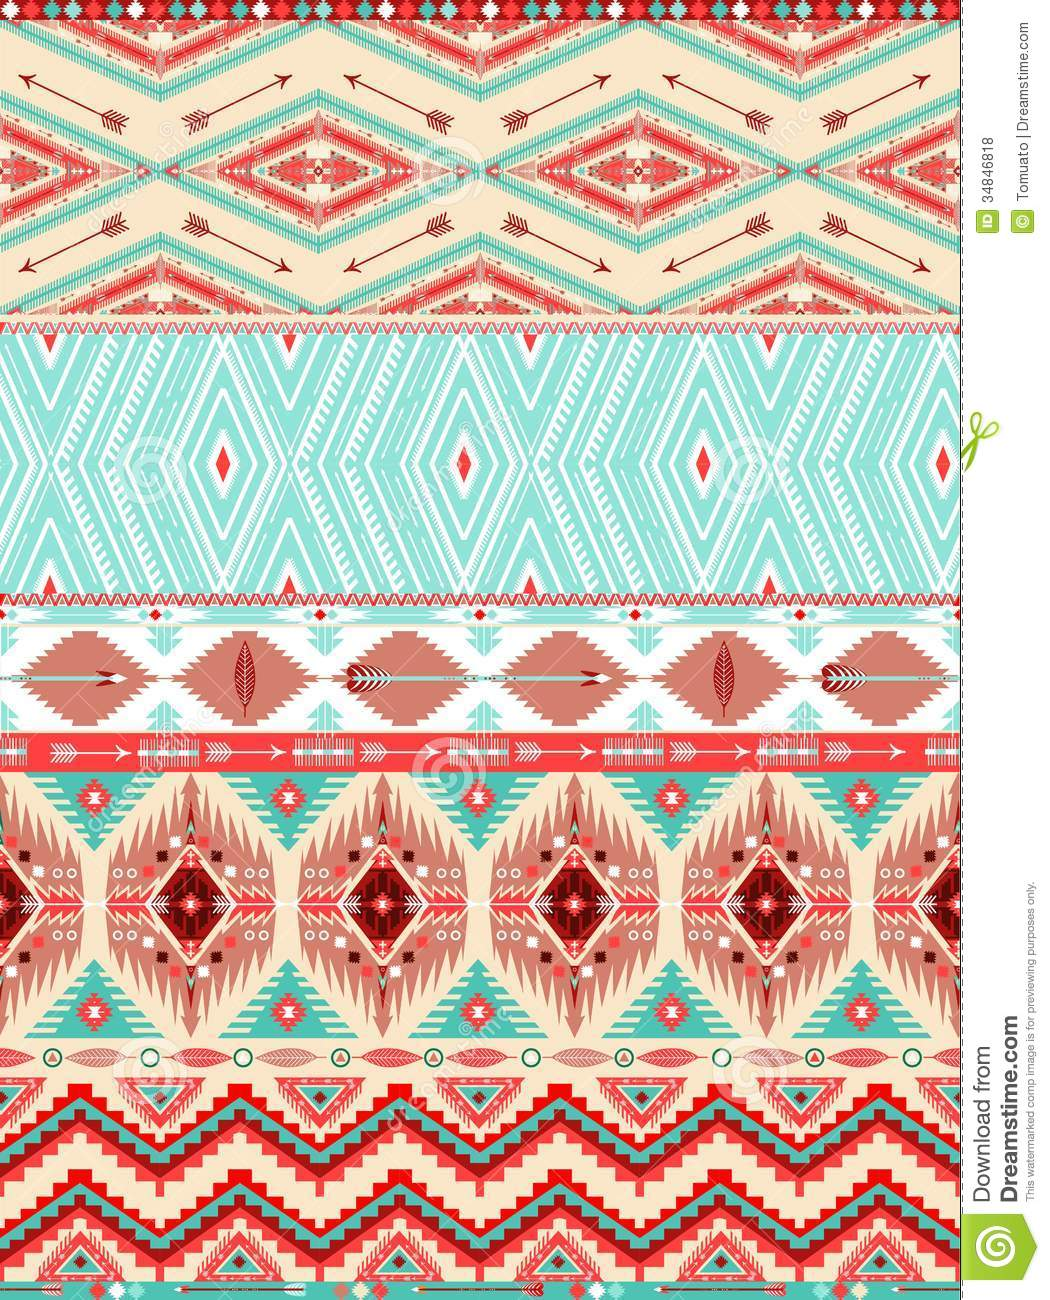 Aztec Geometric Seamless Pattern Royalty Free Stock Photos Image 34846818